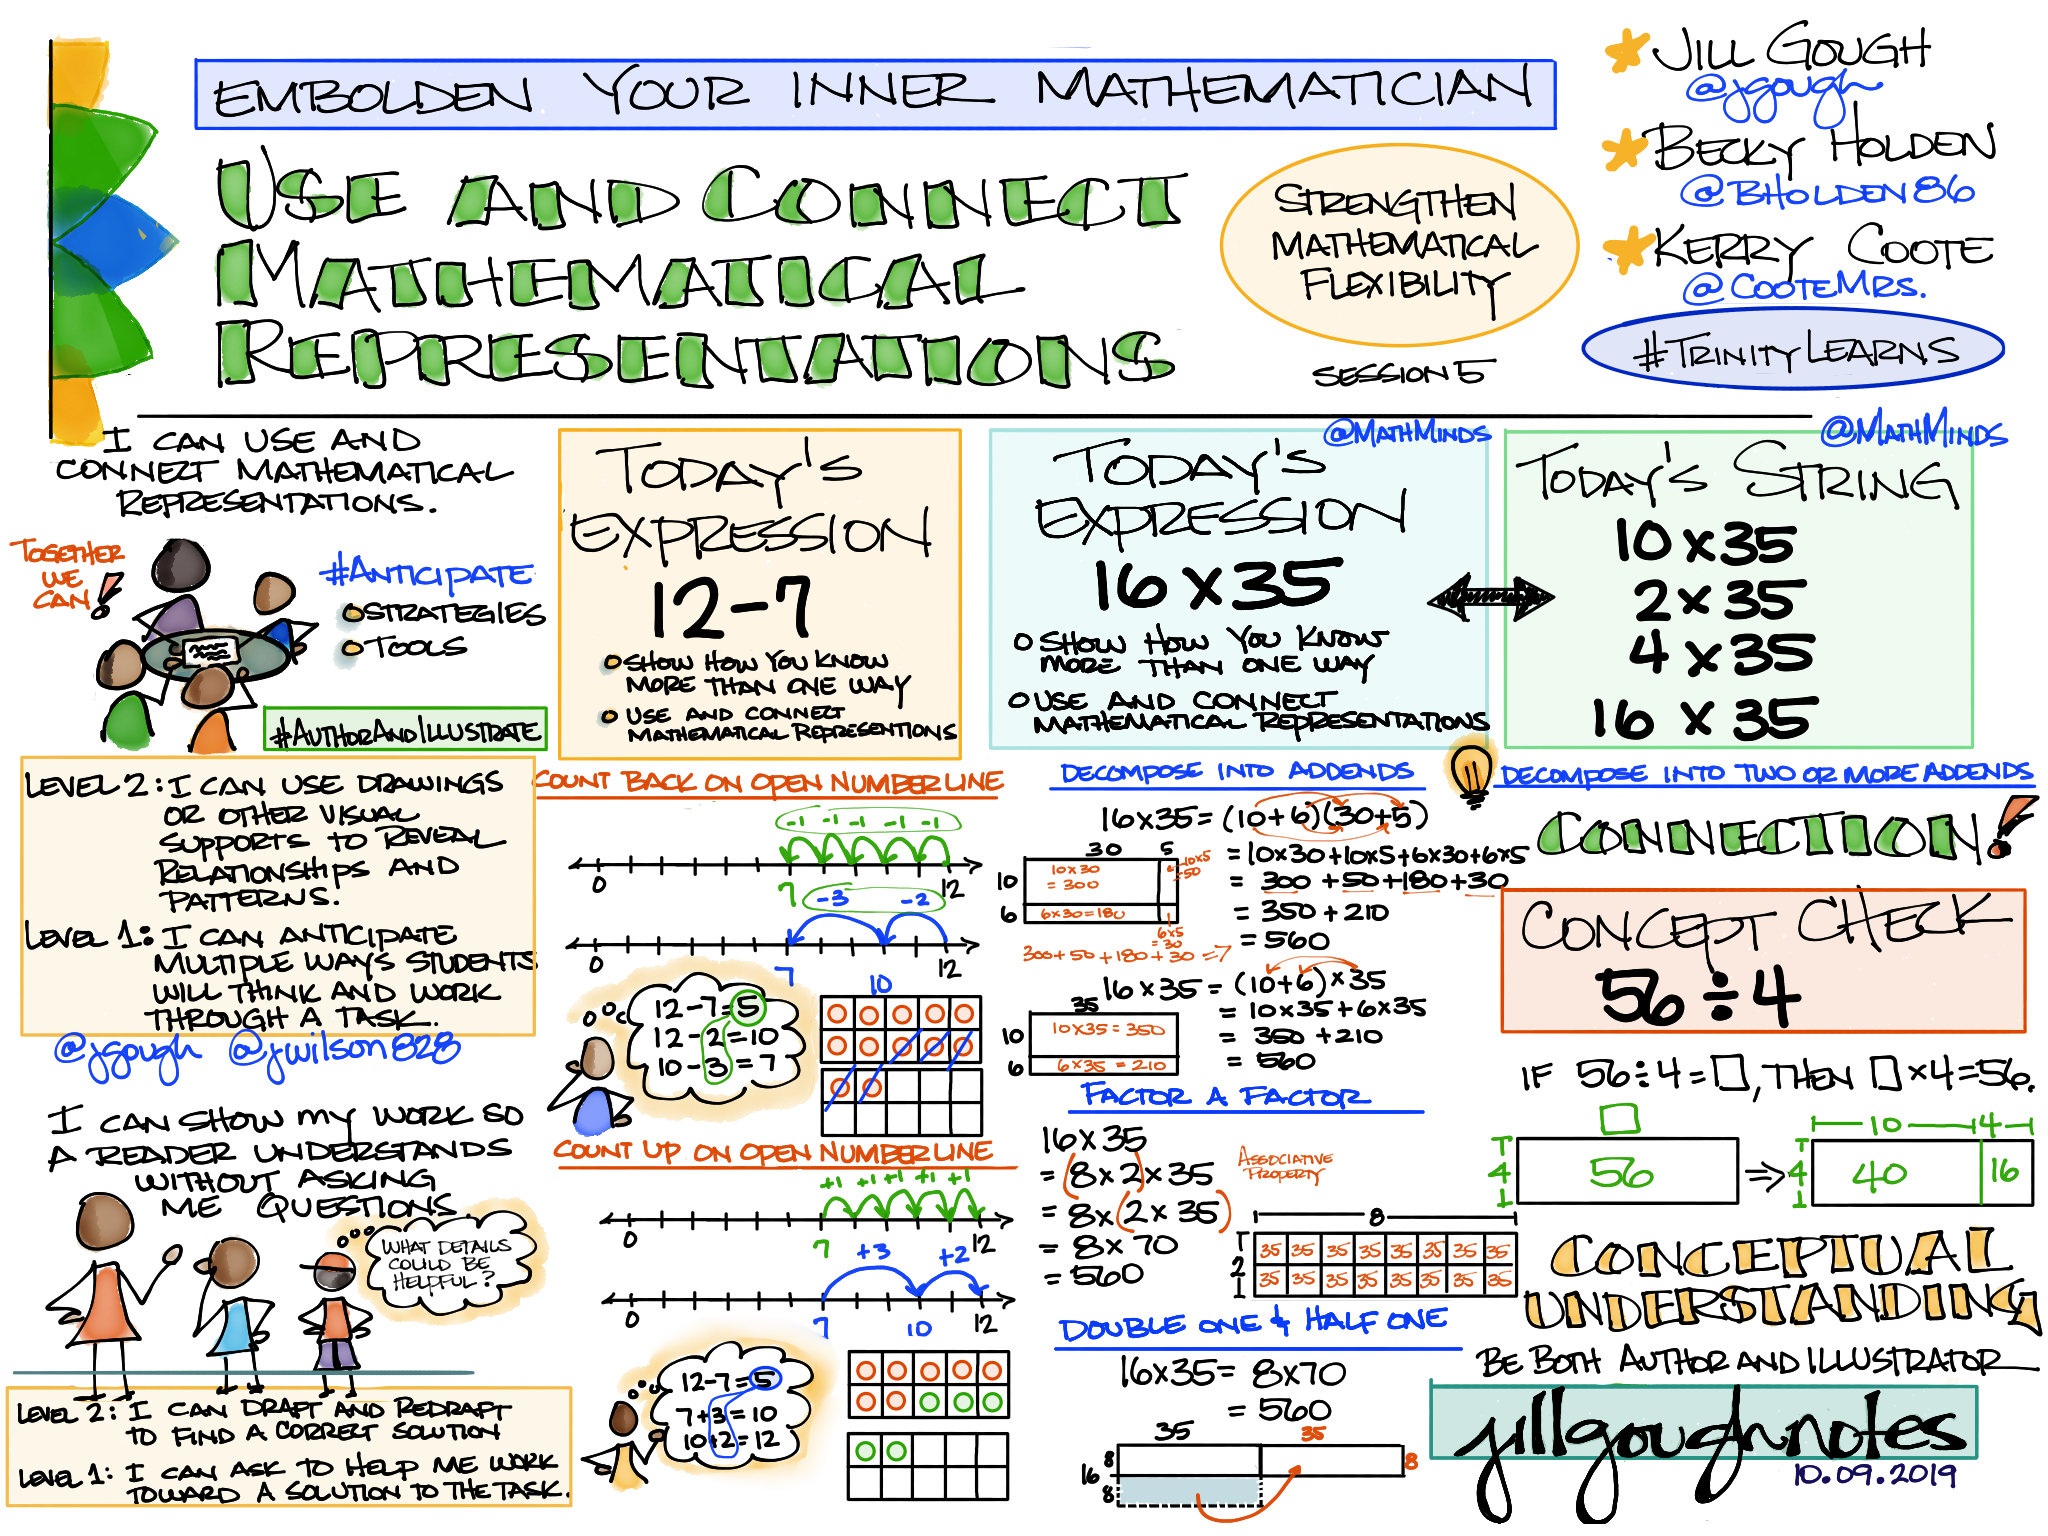 #EmboldenYourInnerMathematician session 5 #TrinityLearns #AuthorAndIllustrate Use and Connect Mathematical Representations with @jgough @bholden86 @CooteMrs and from @MathMinds @jwilson828 #Grateful